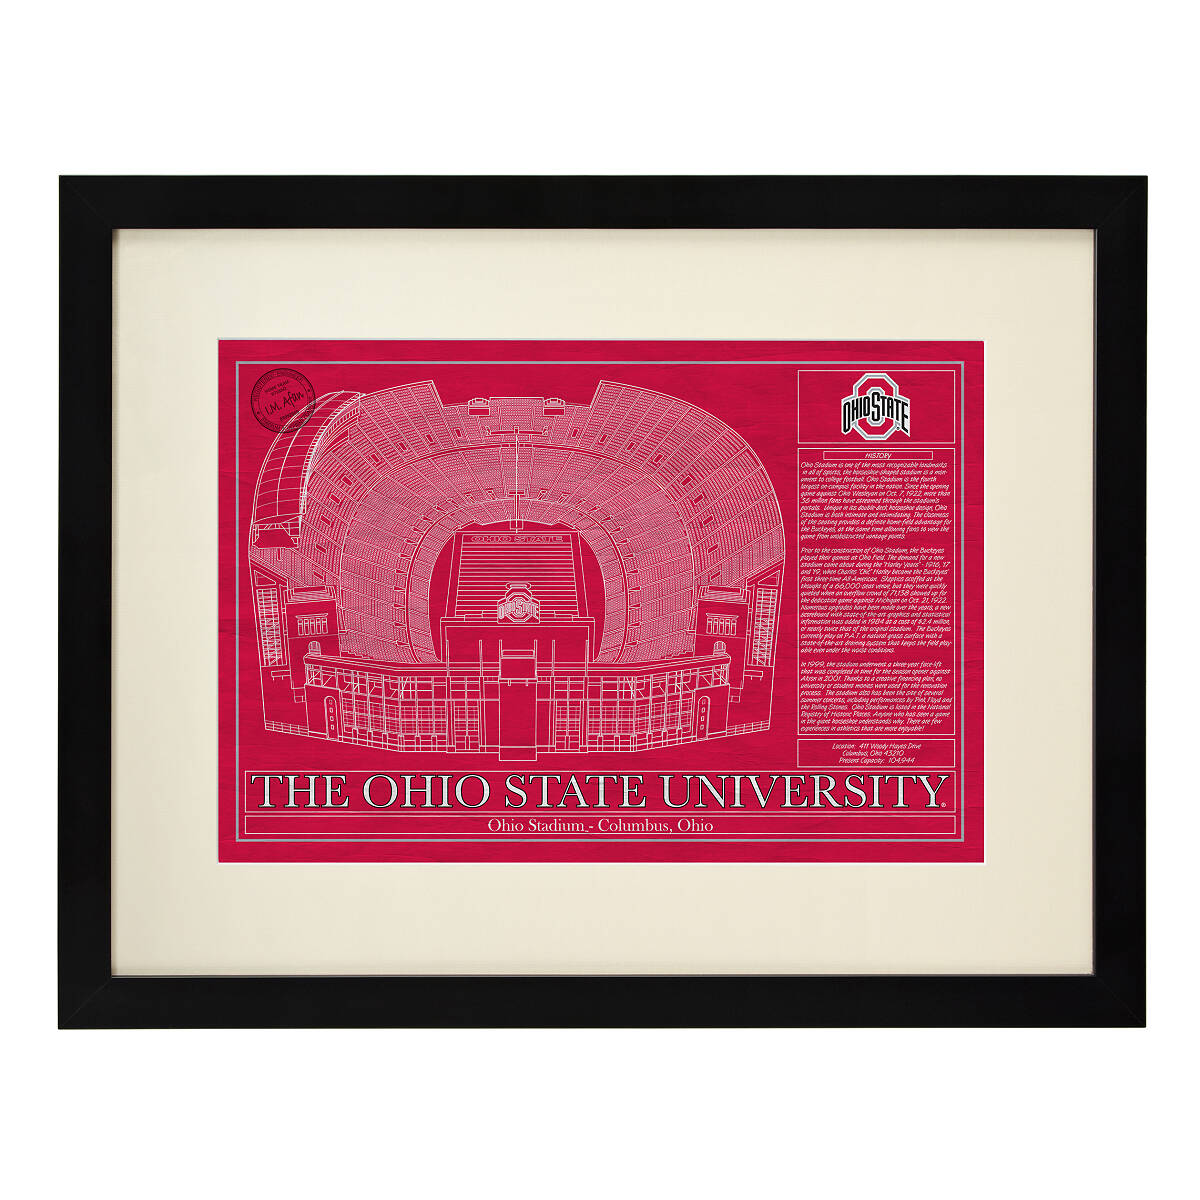 College football stadium blueprint football stadiums college college football stadium blueprint 2 thumbnail malvernweather Image collections